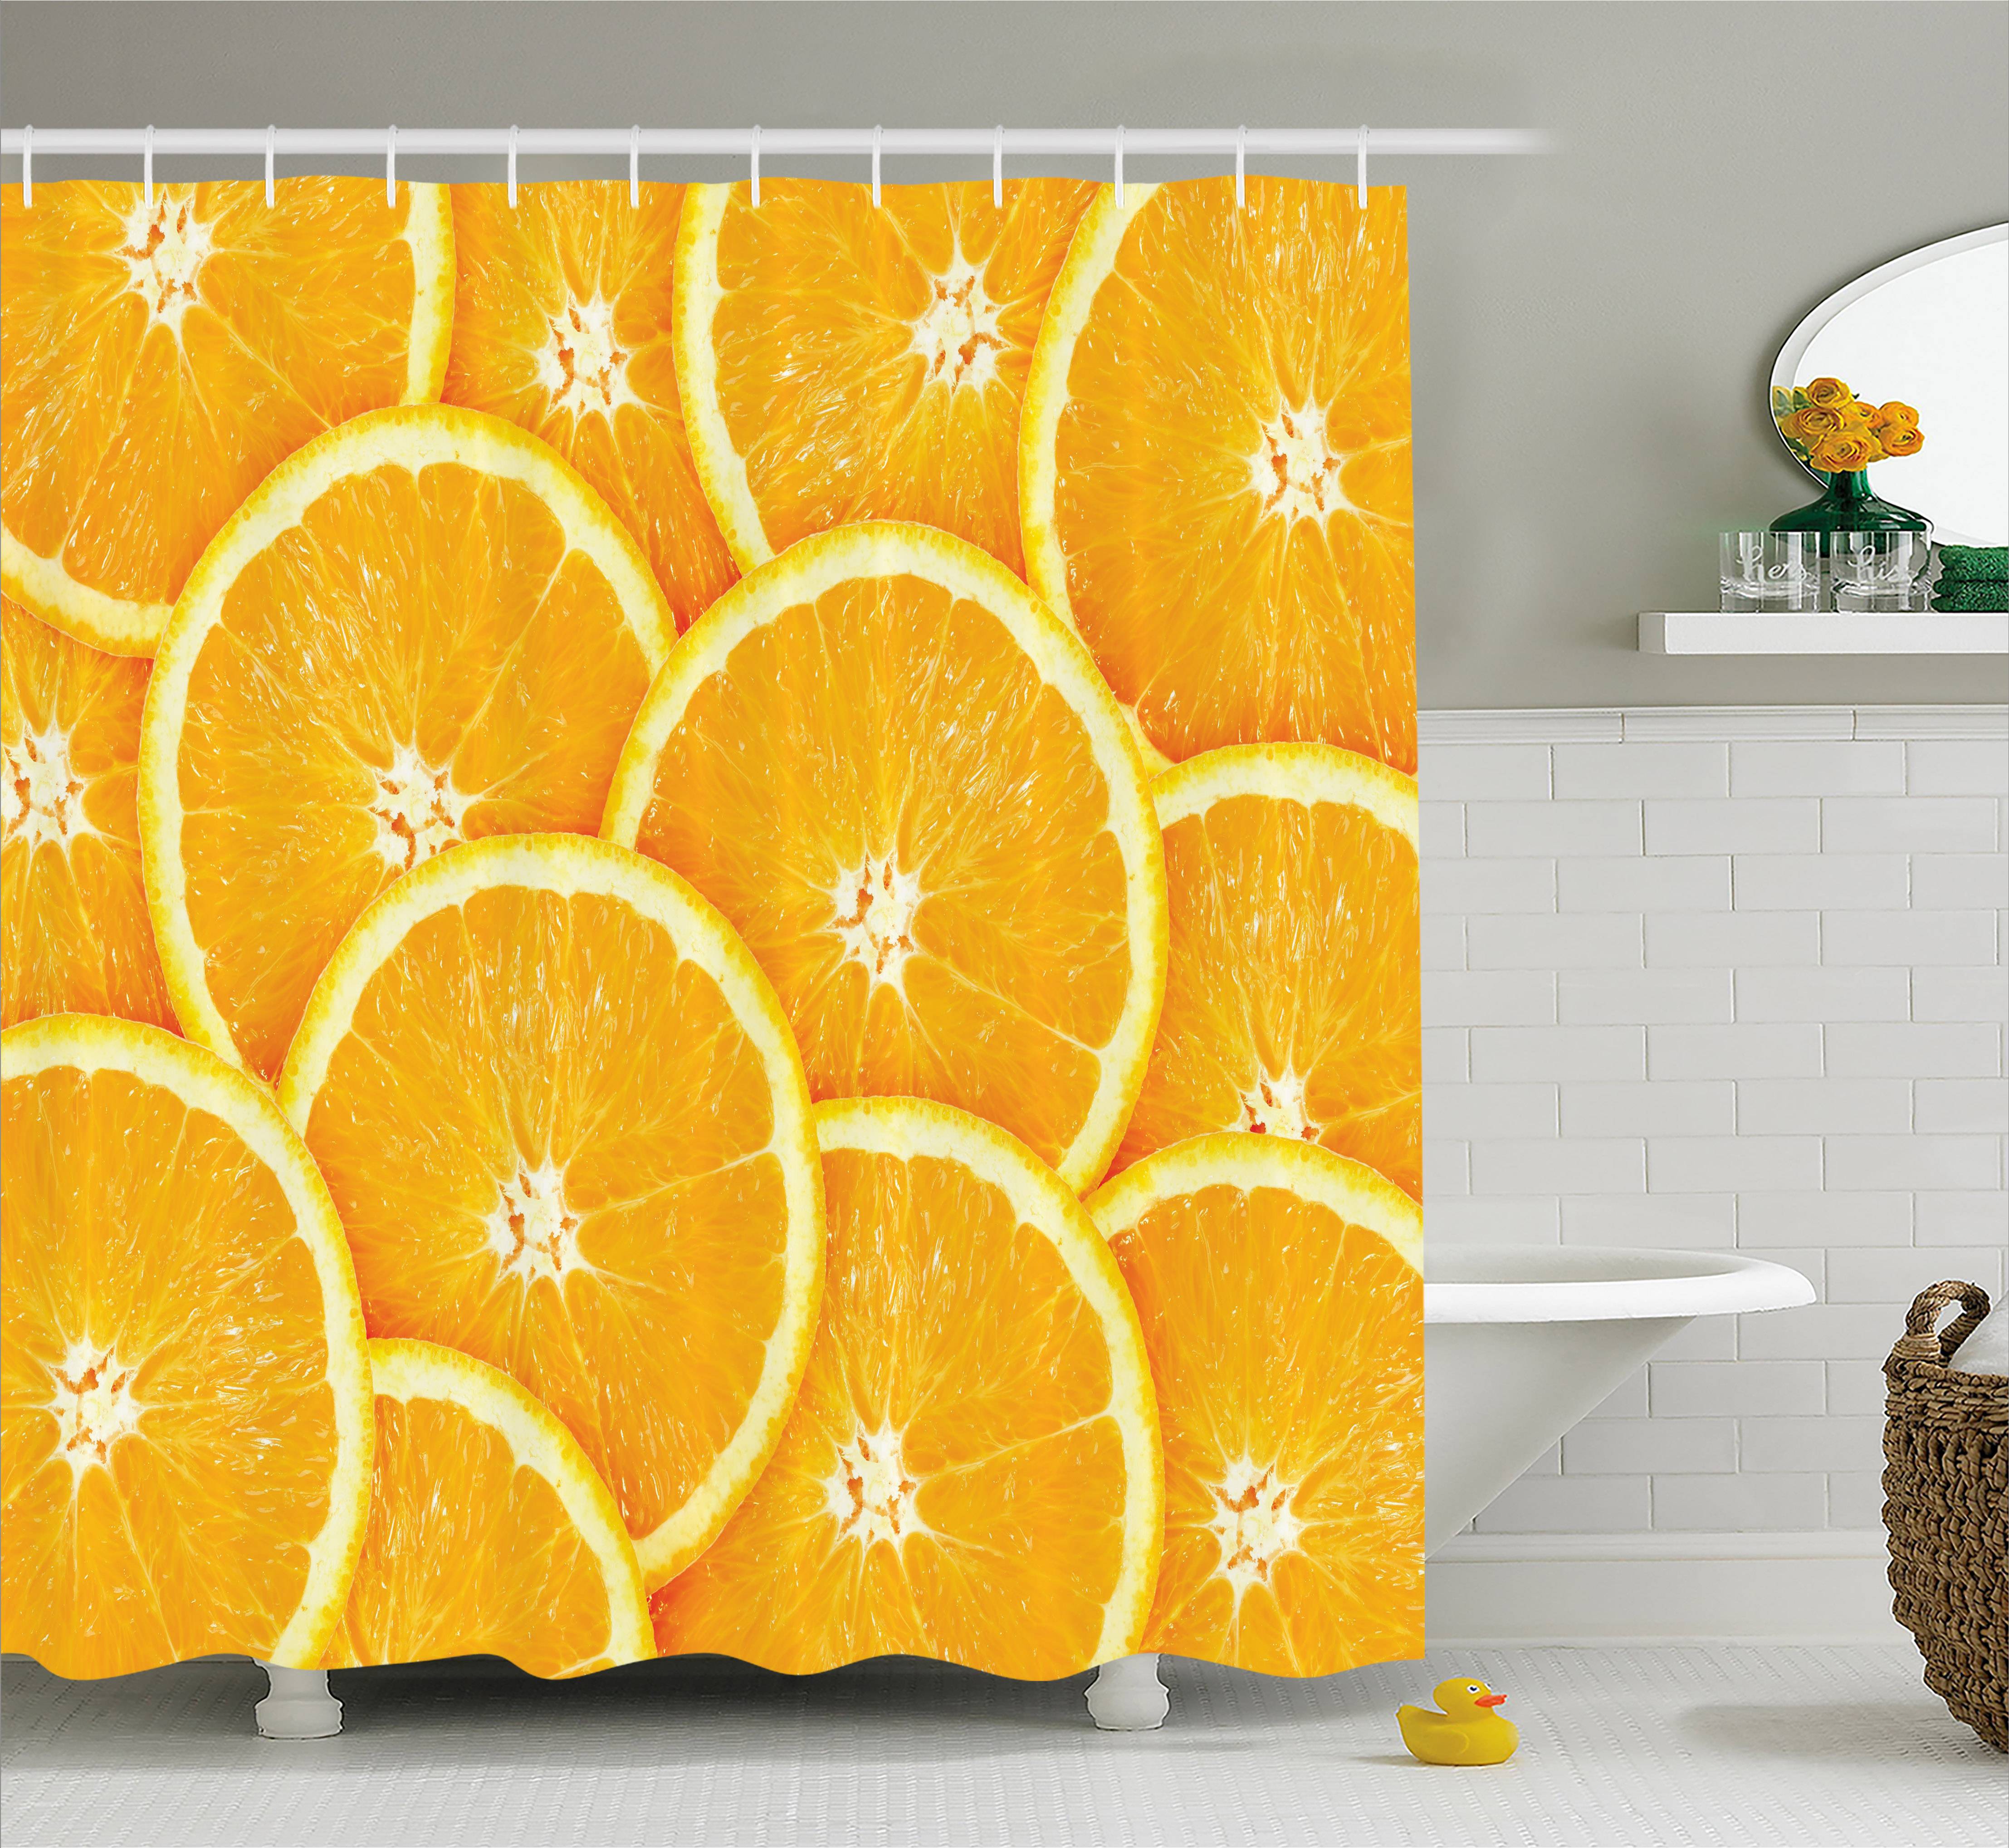 Orange Shower Curtain, Realistic Citrus Fruit of Orange Slices Close Up Photography Clean Healthy Eating, Fabric Bathroom Set with Hooks, 69W X 75L Inches Long, Marigold, by Ambesonne